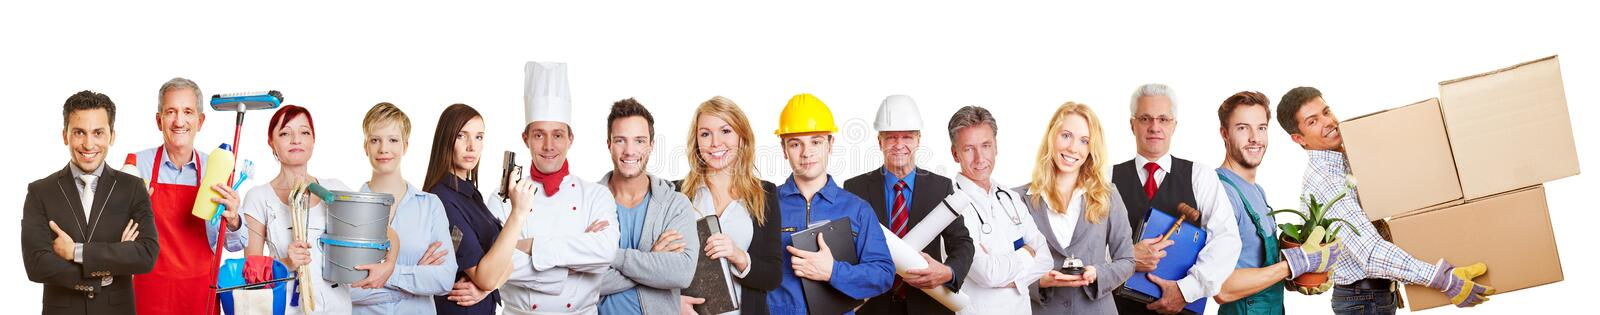 Panorama group of people from many trades and professions royalty free stock image